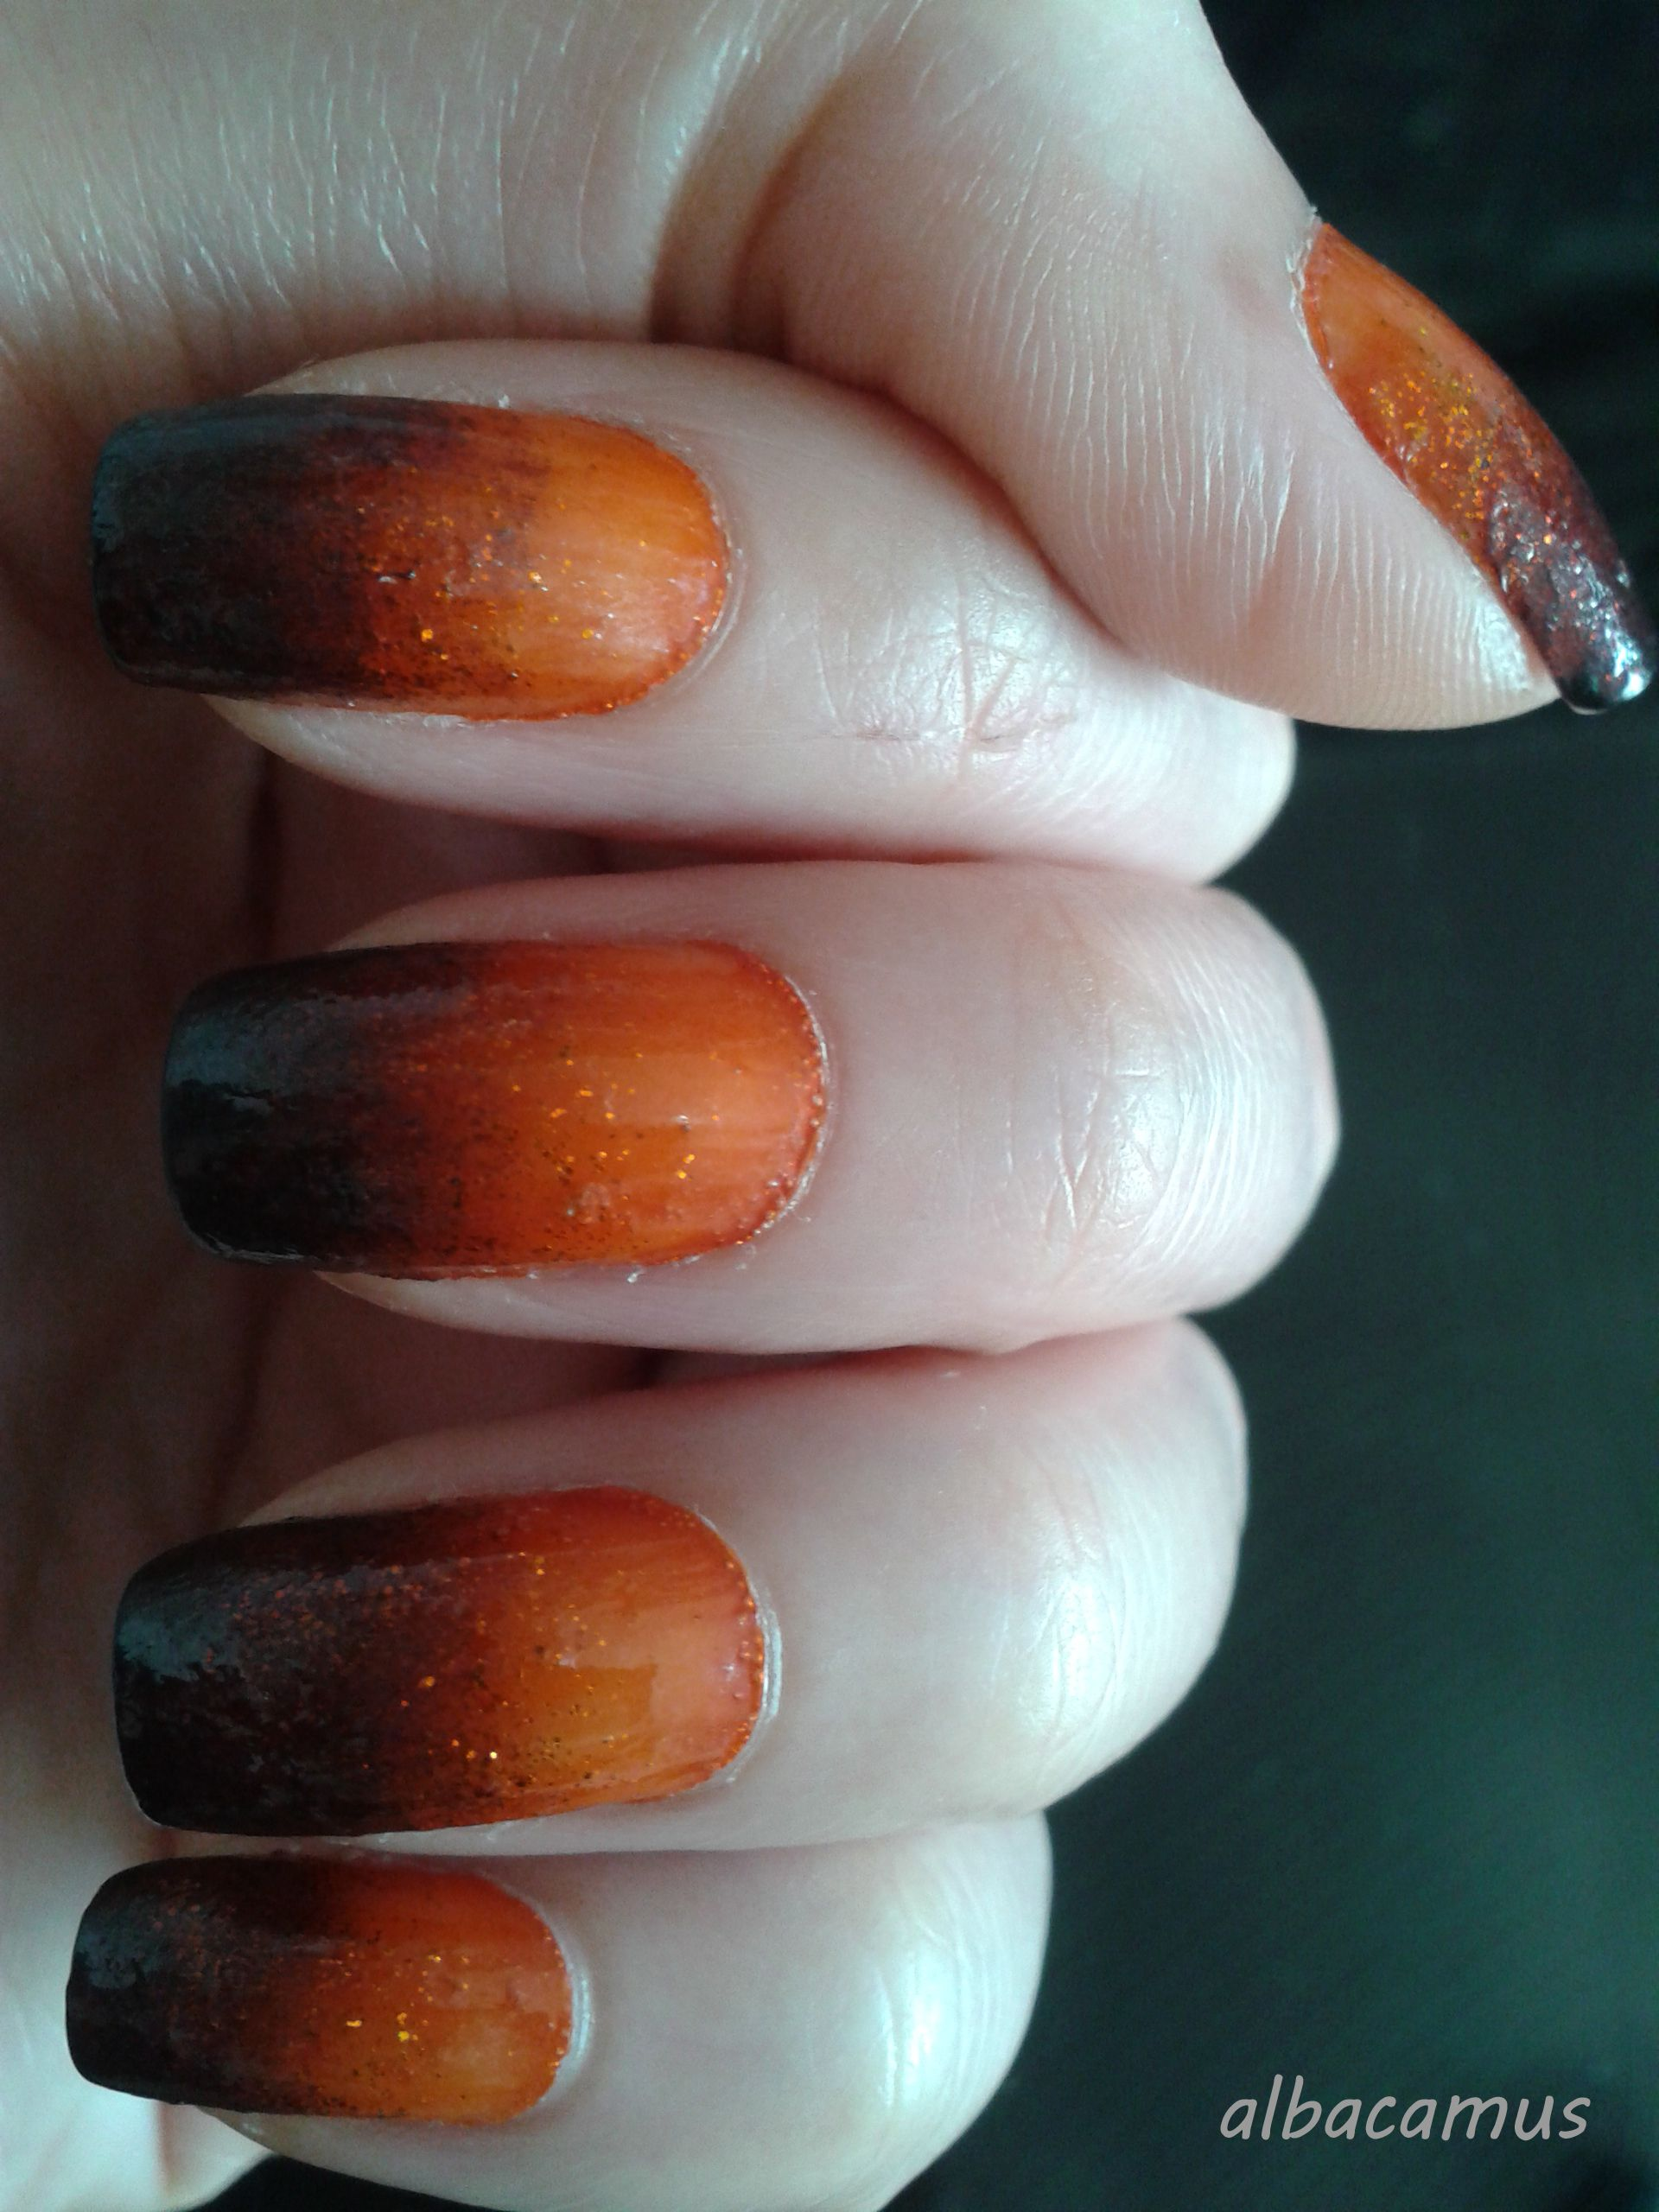 Glitter Orange And Black Ombre Nails Halloween Nails Black Ombre Nails Halloween Nails Ombre Nails